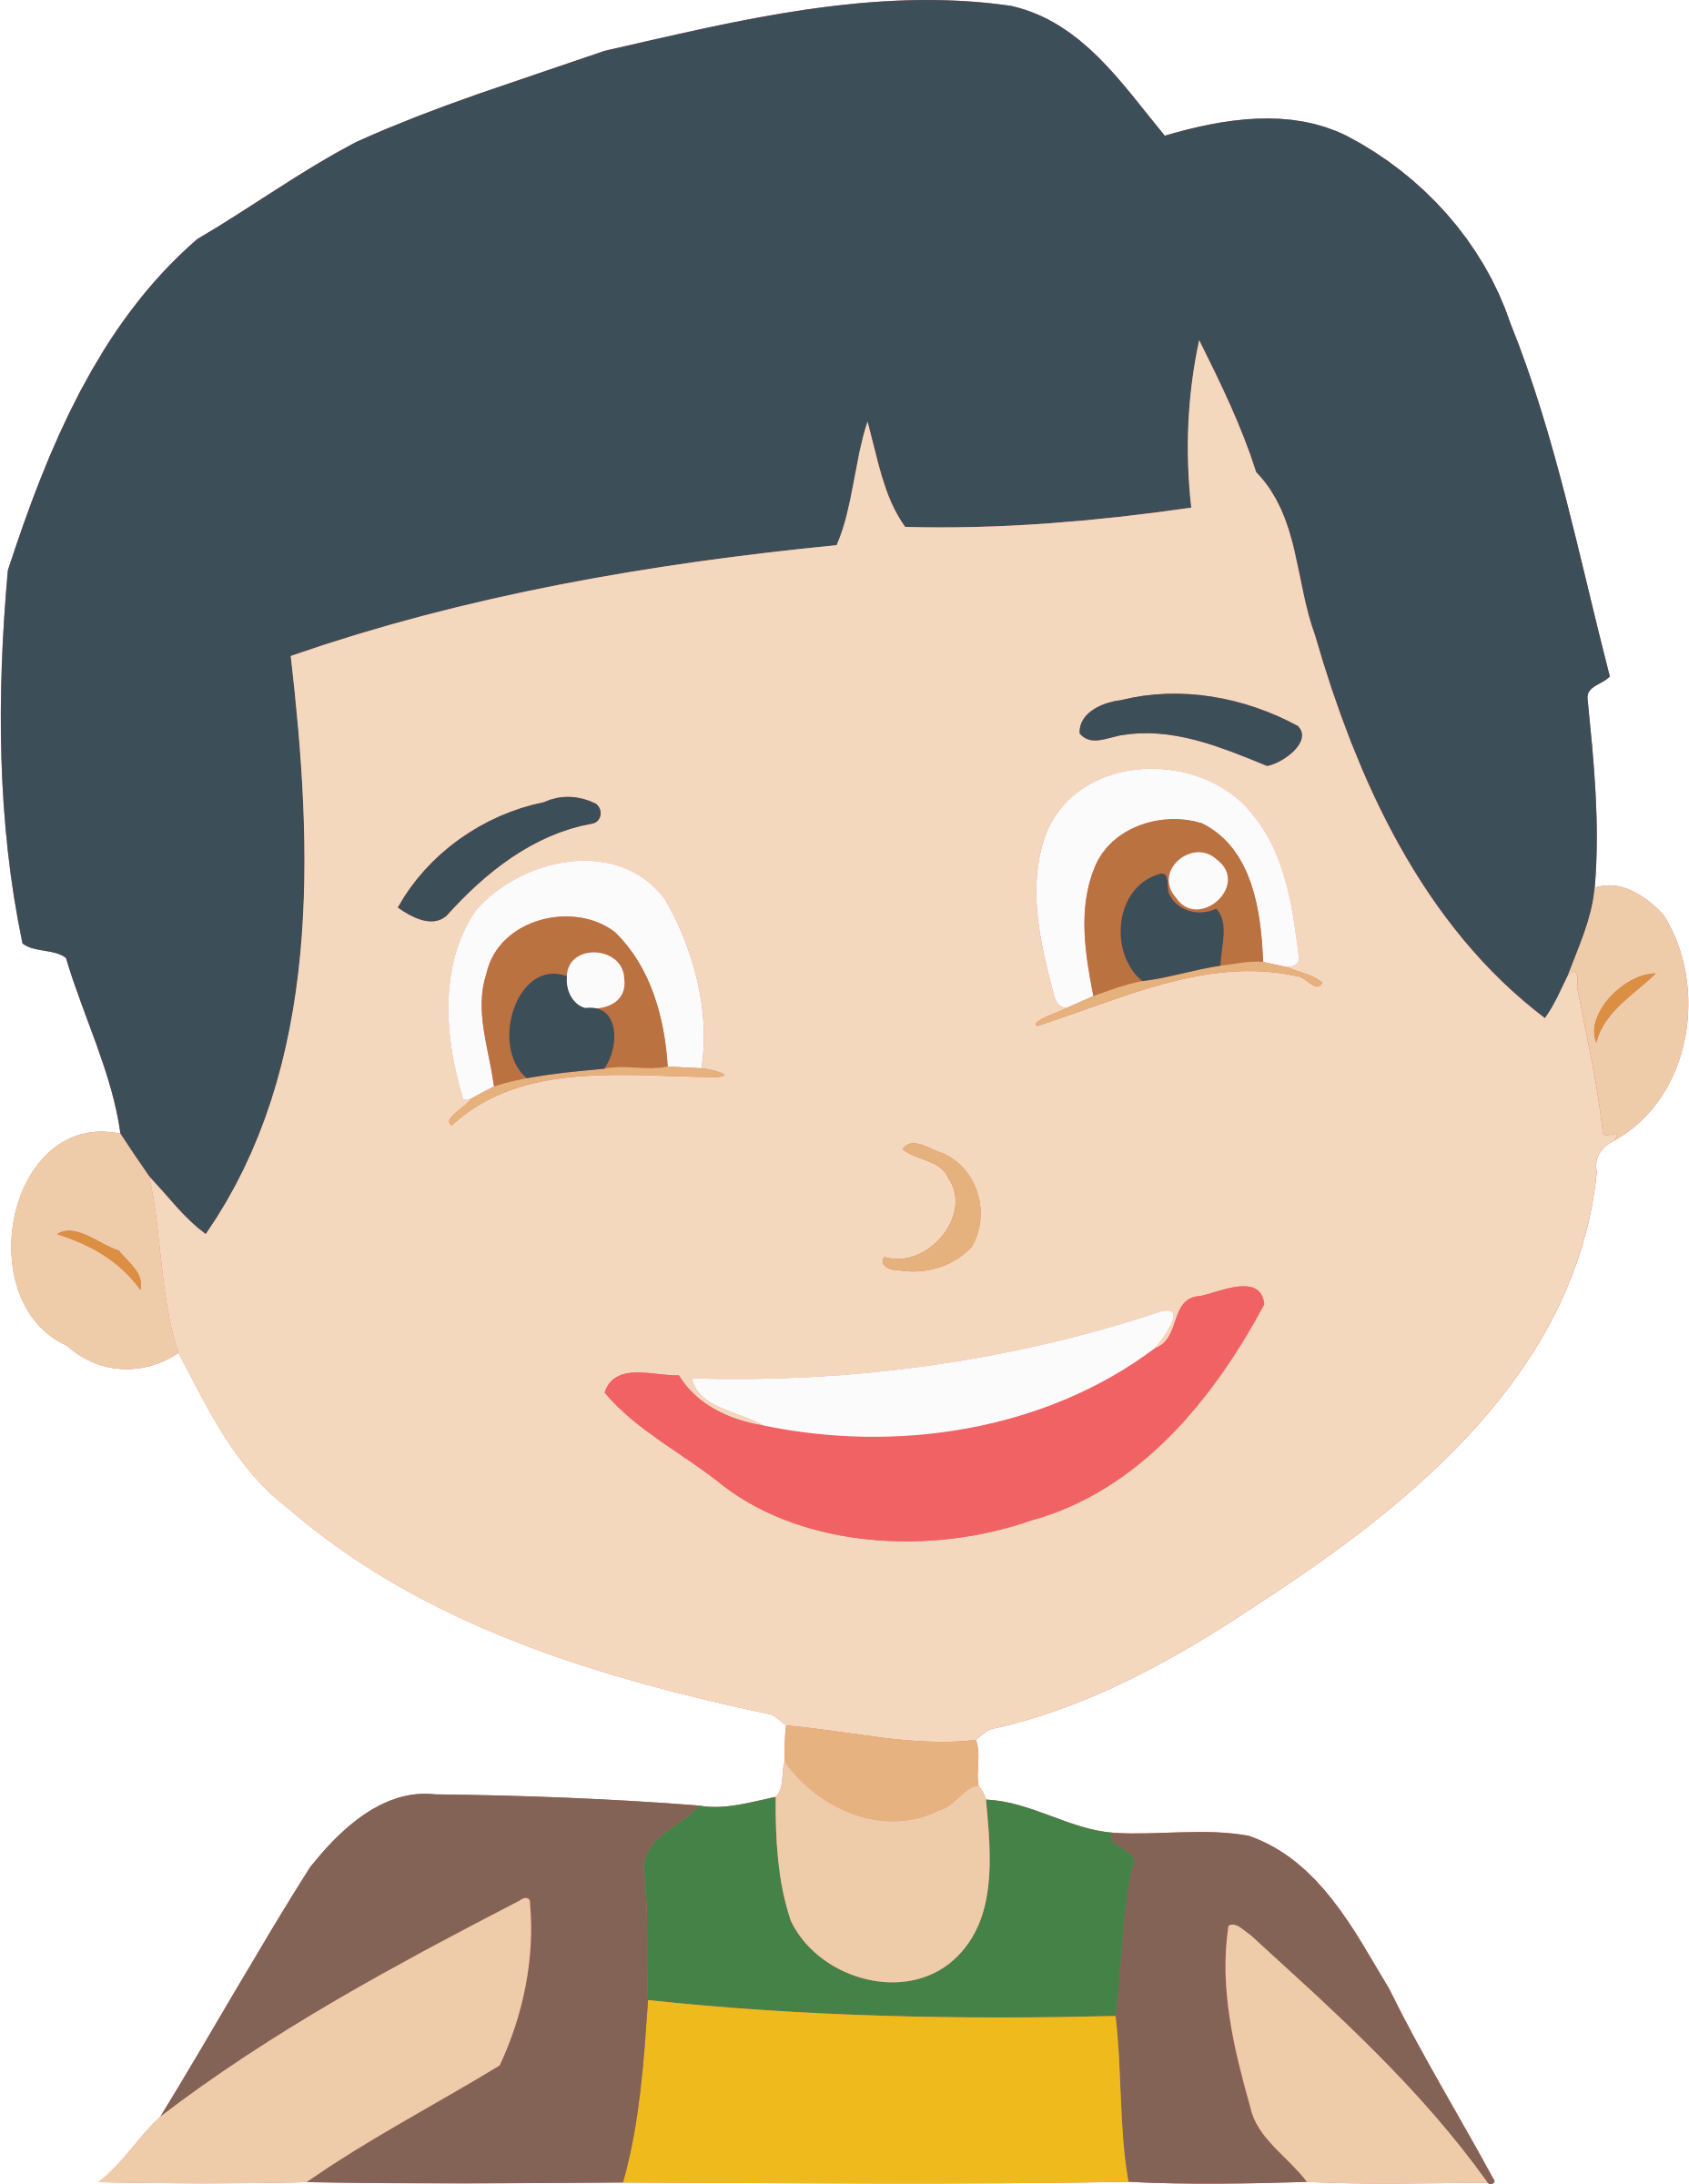 Child big image png. Chin clipart kid